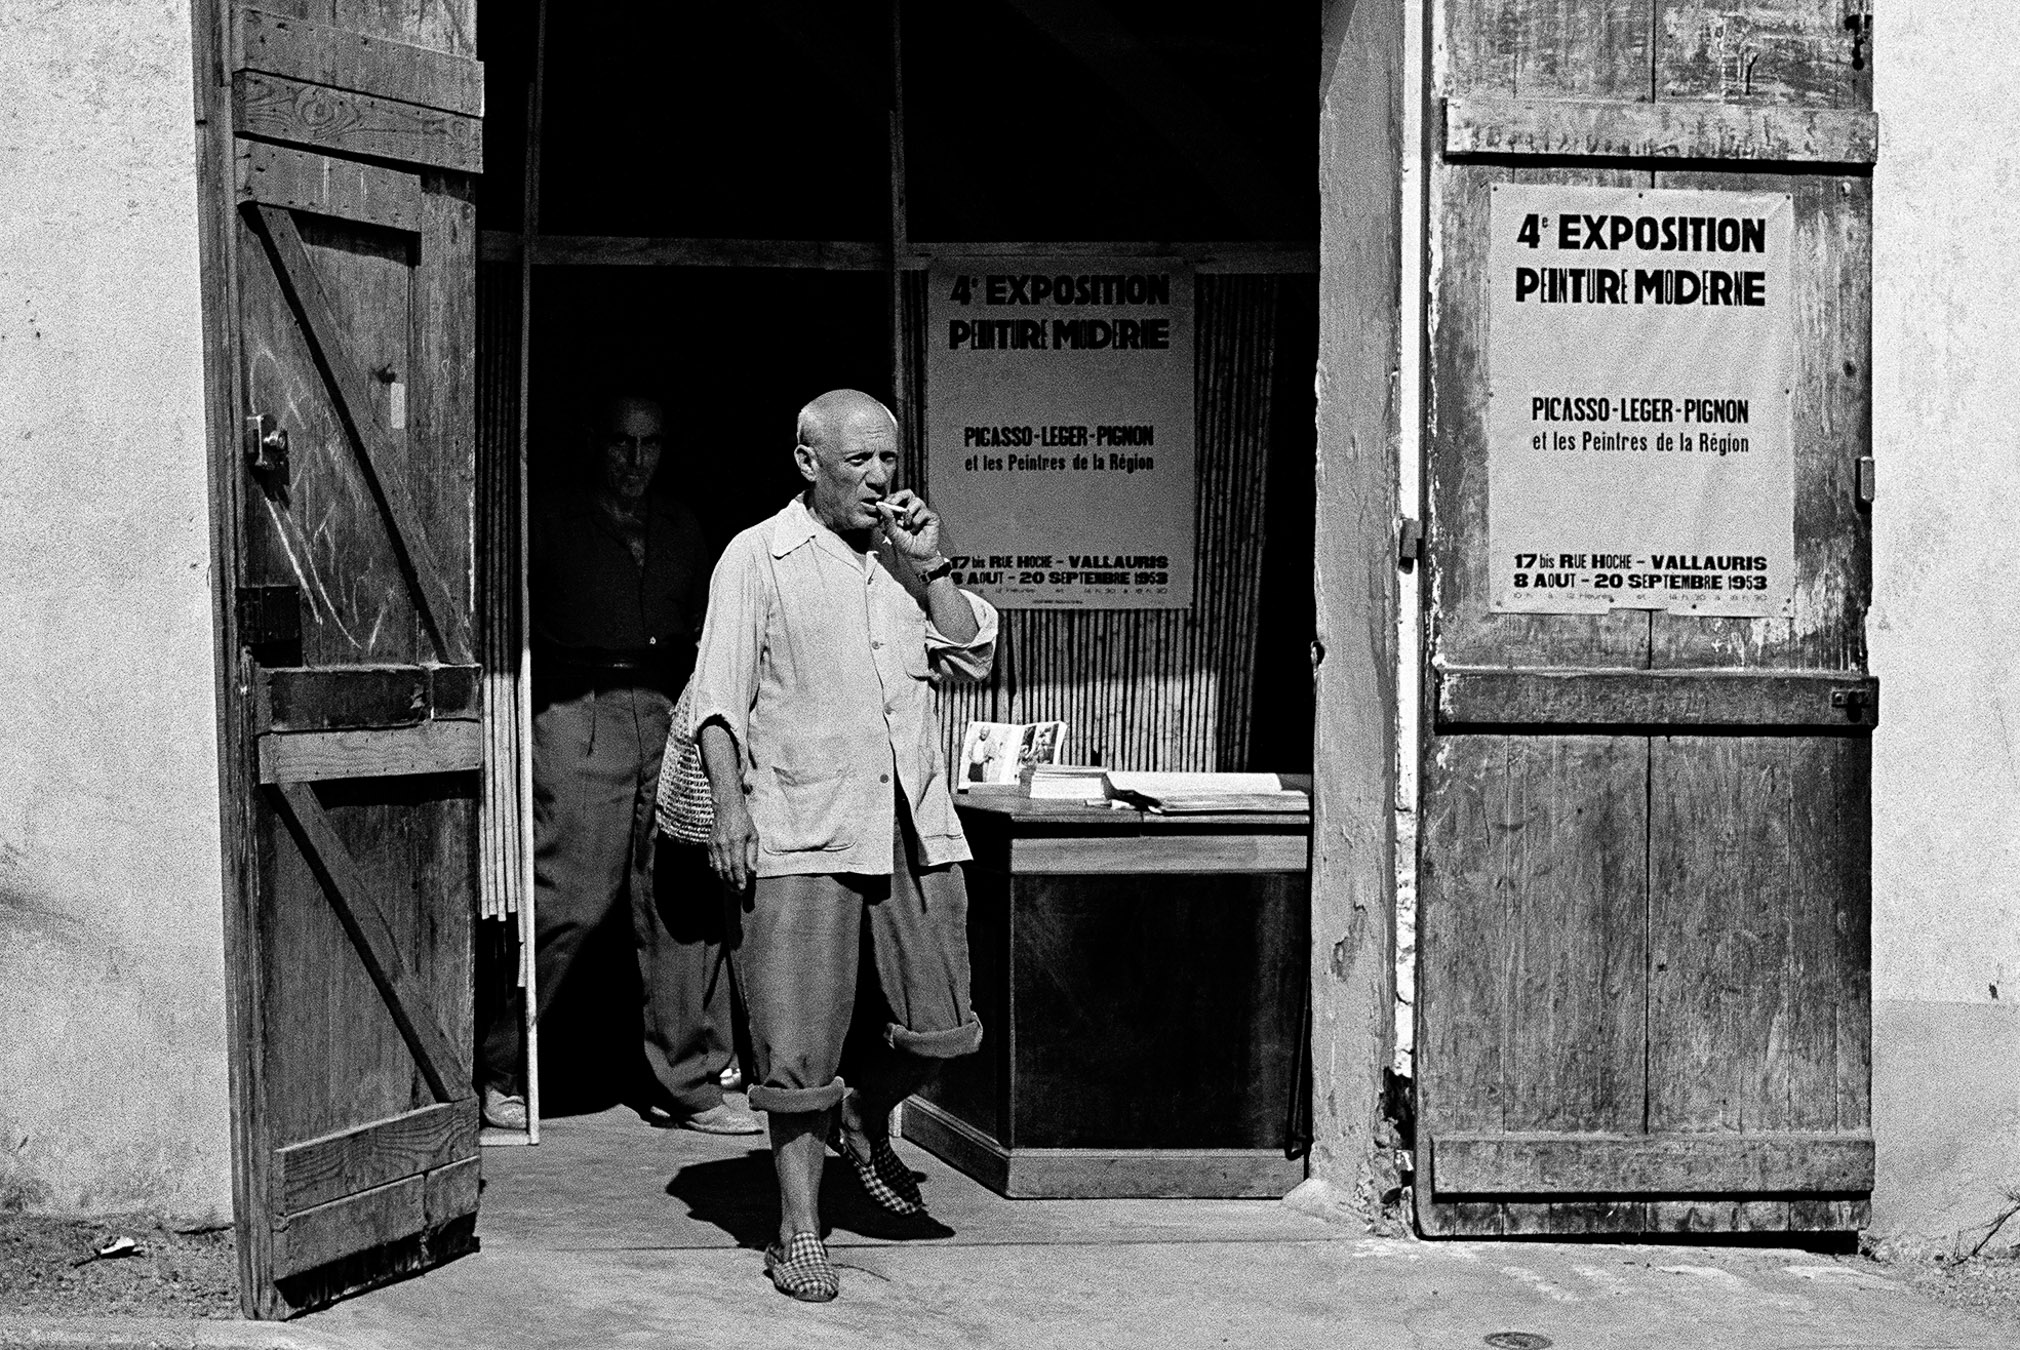 Picasso leaving exhibition in Vallauris 1953, Canson fine art print, mounted, printed 2013 132x110cm, Edition of 7, Also available: 78x66cm, Edition of 10